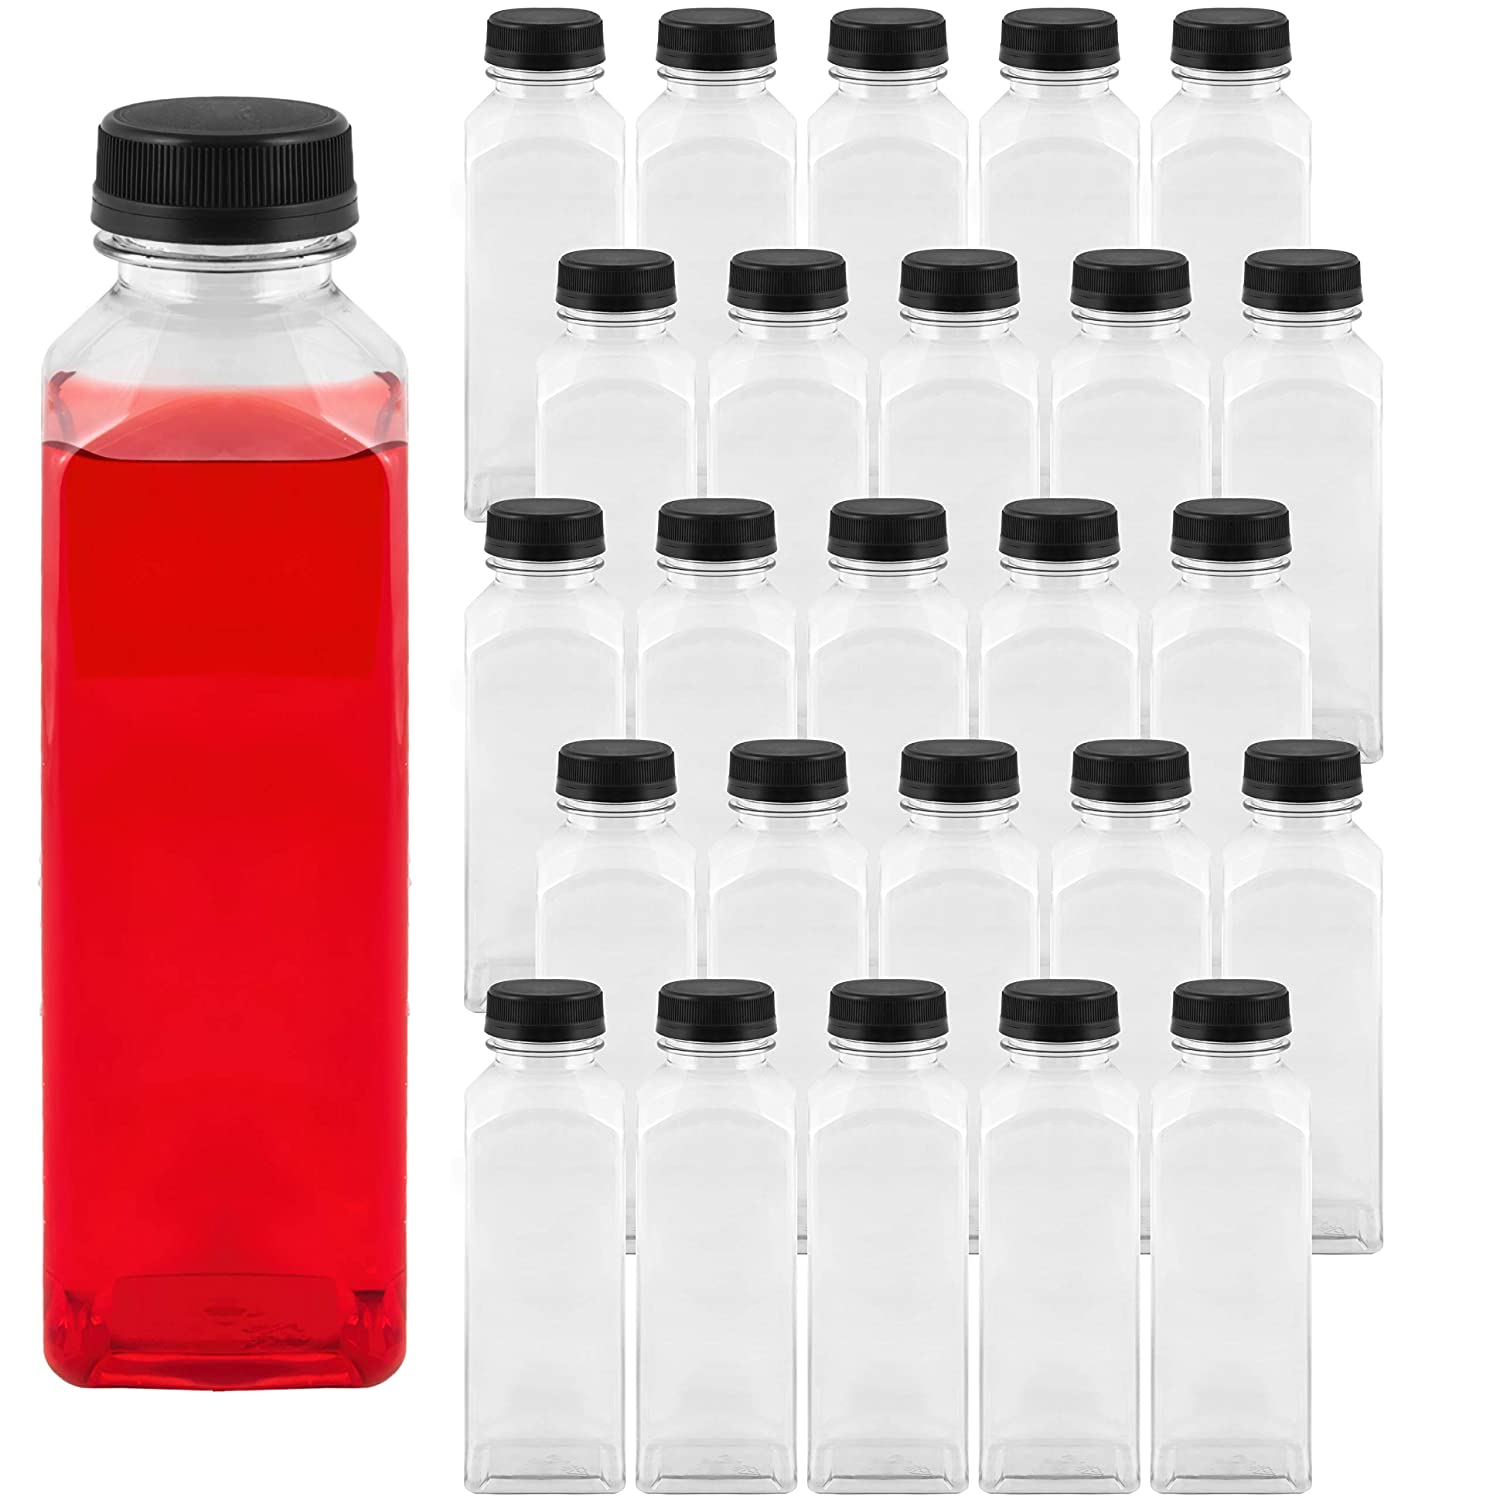 Takeout Depot - 16 oz Plastic Bottles with Caps (25 Pack) - Perfect for Your Water, Juice or Smoothie - 16oz Clear PET Plastic Containers with Lids - Small Disposable Liquids & Juicing Container